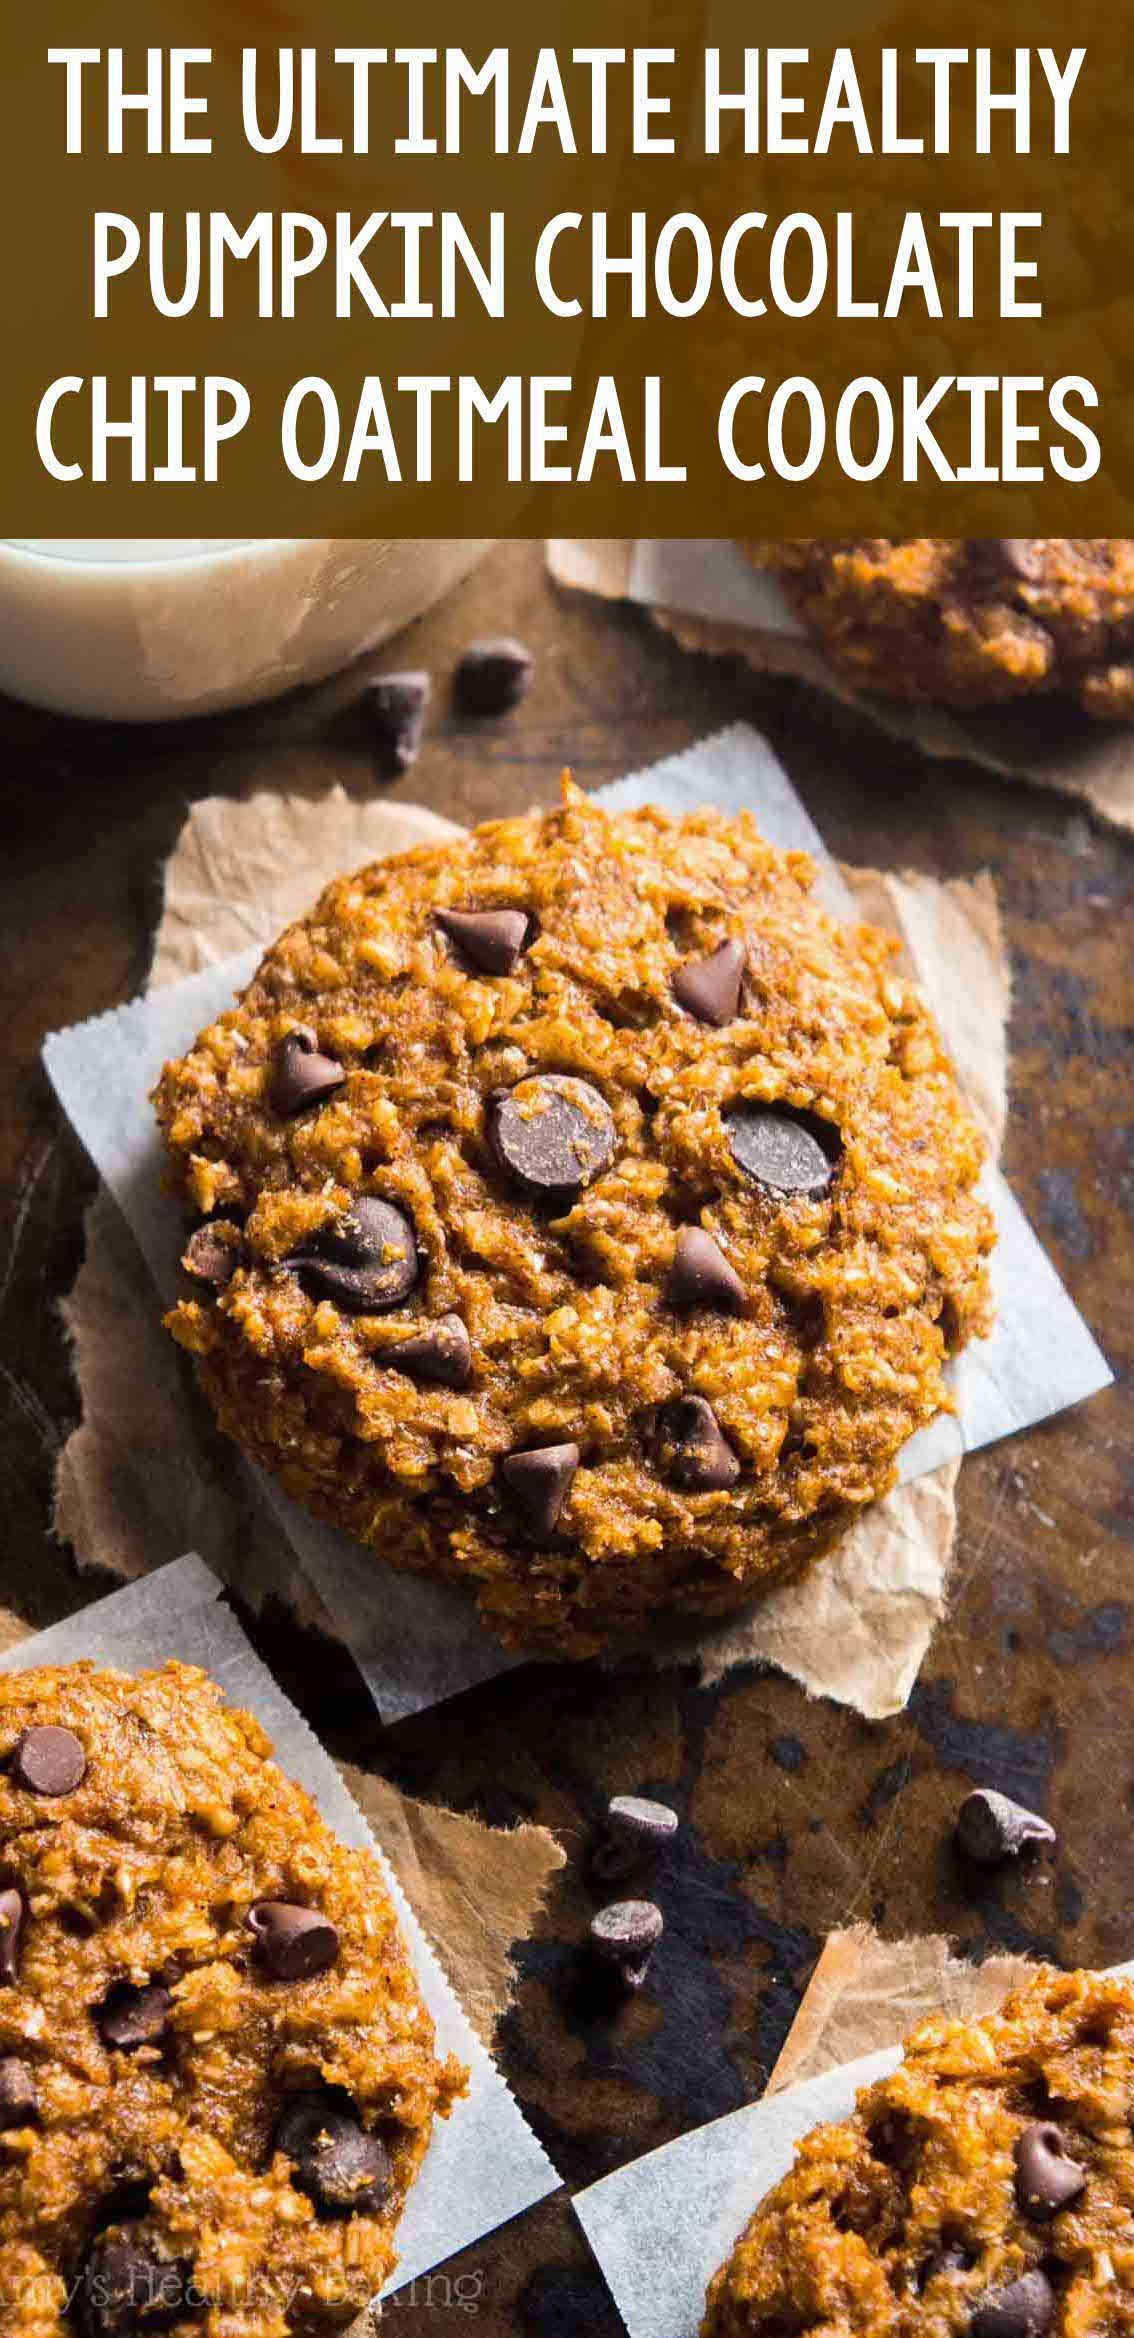 Clean eating chewy pumpkin pie chocolate chip oatmeal